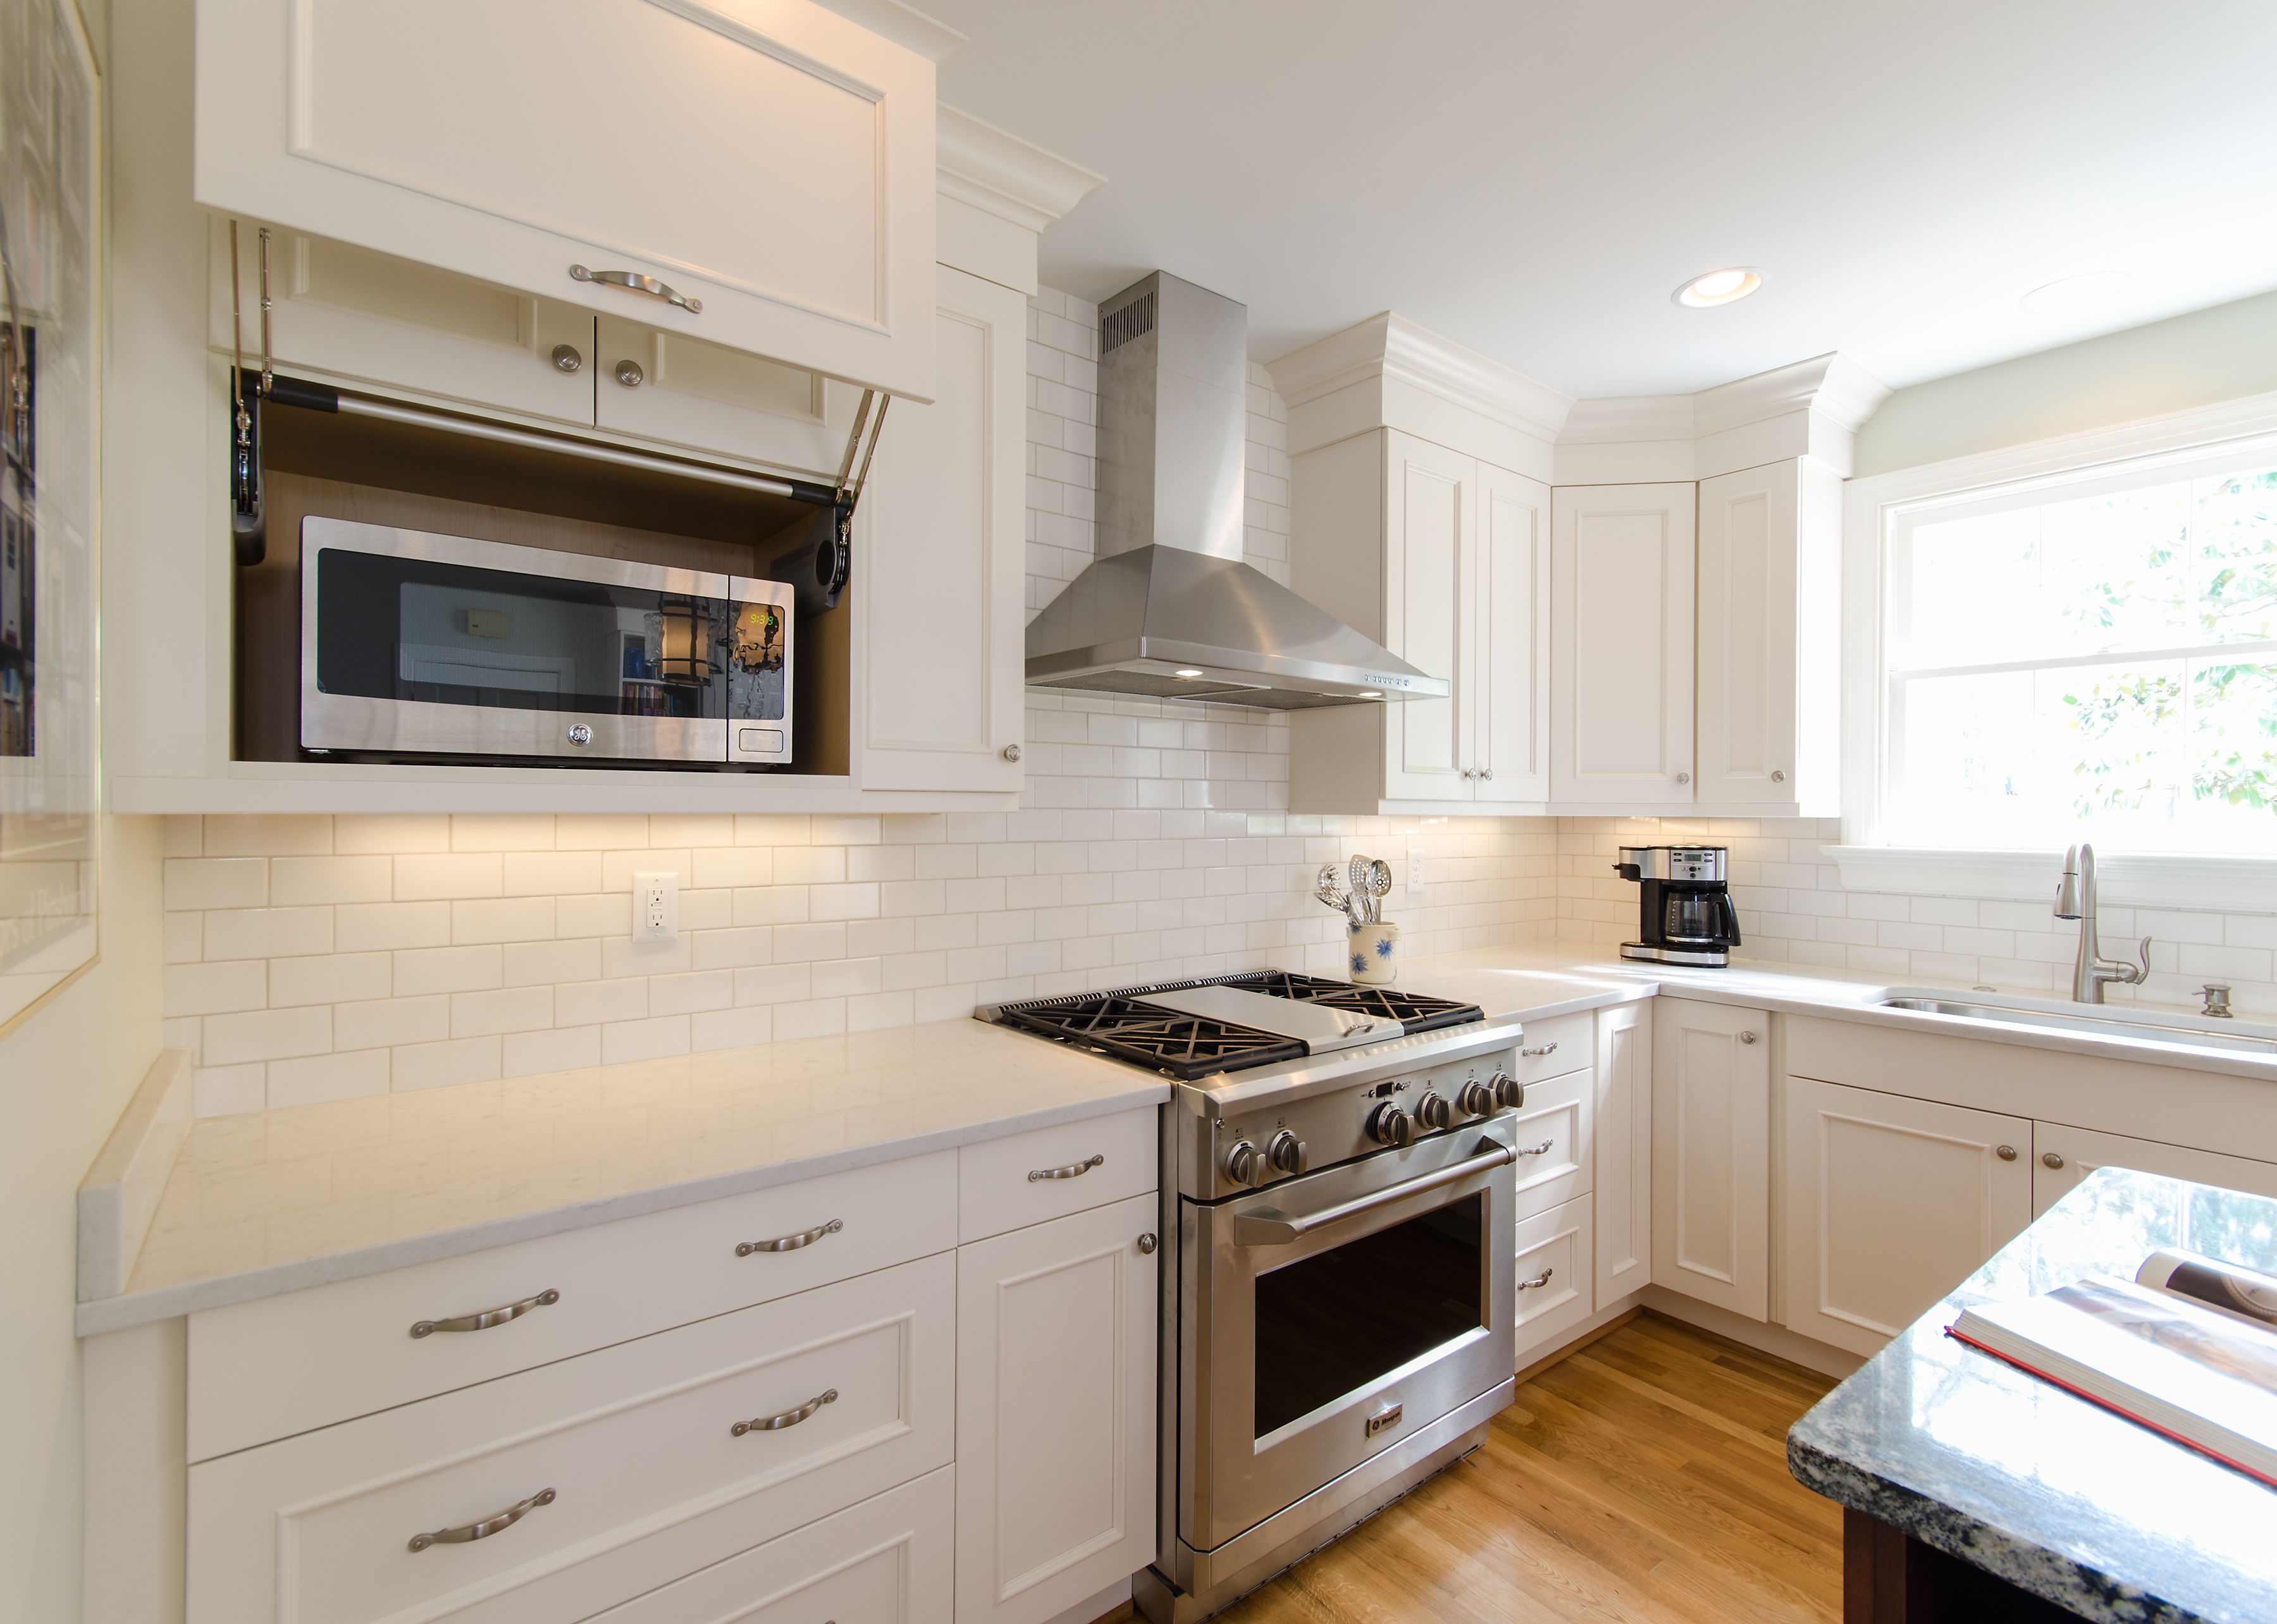 Microwave Neatly Hidden Away In A Customized Cabinet By Elmwood.